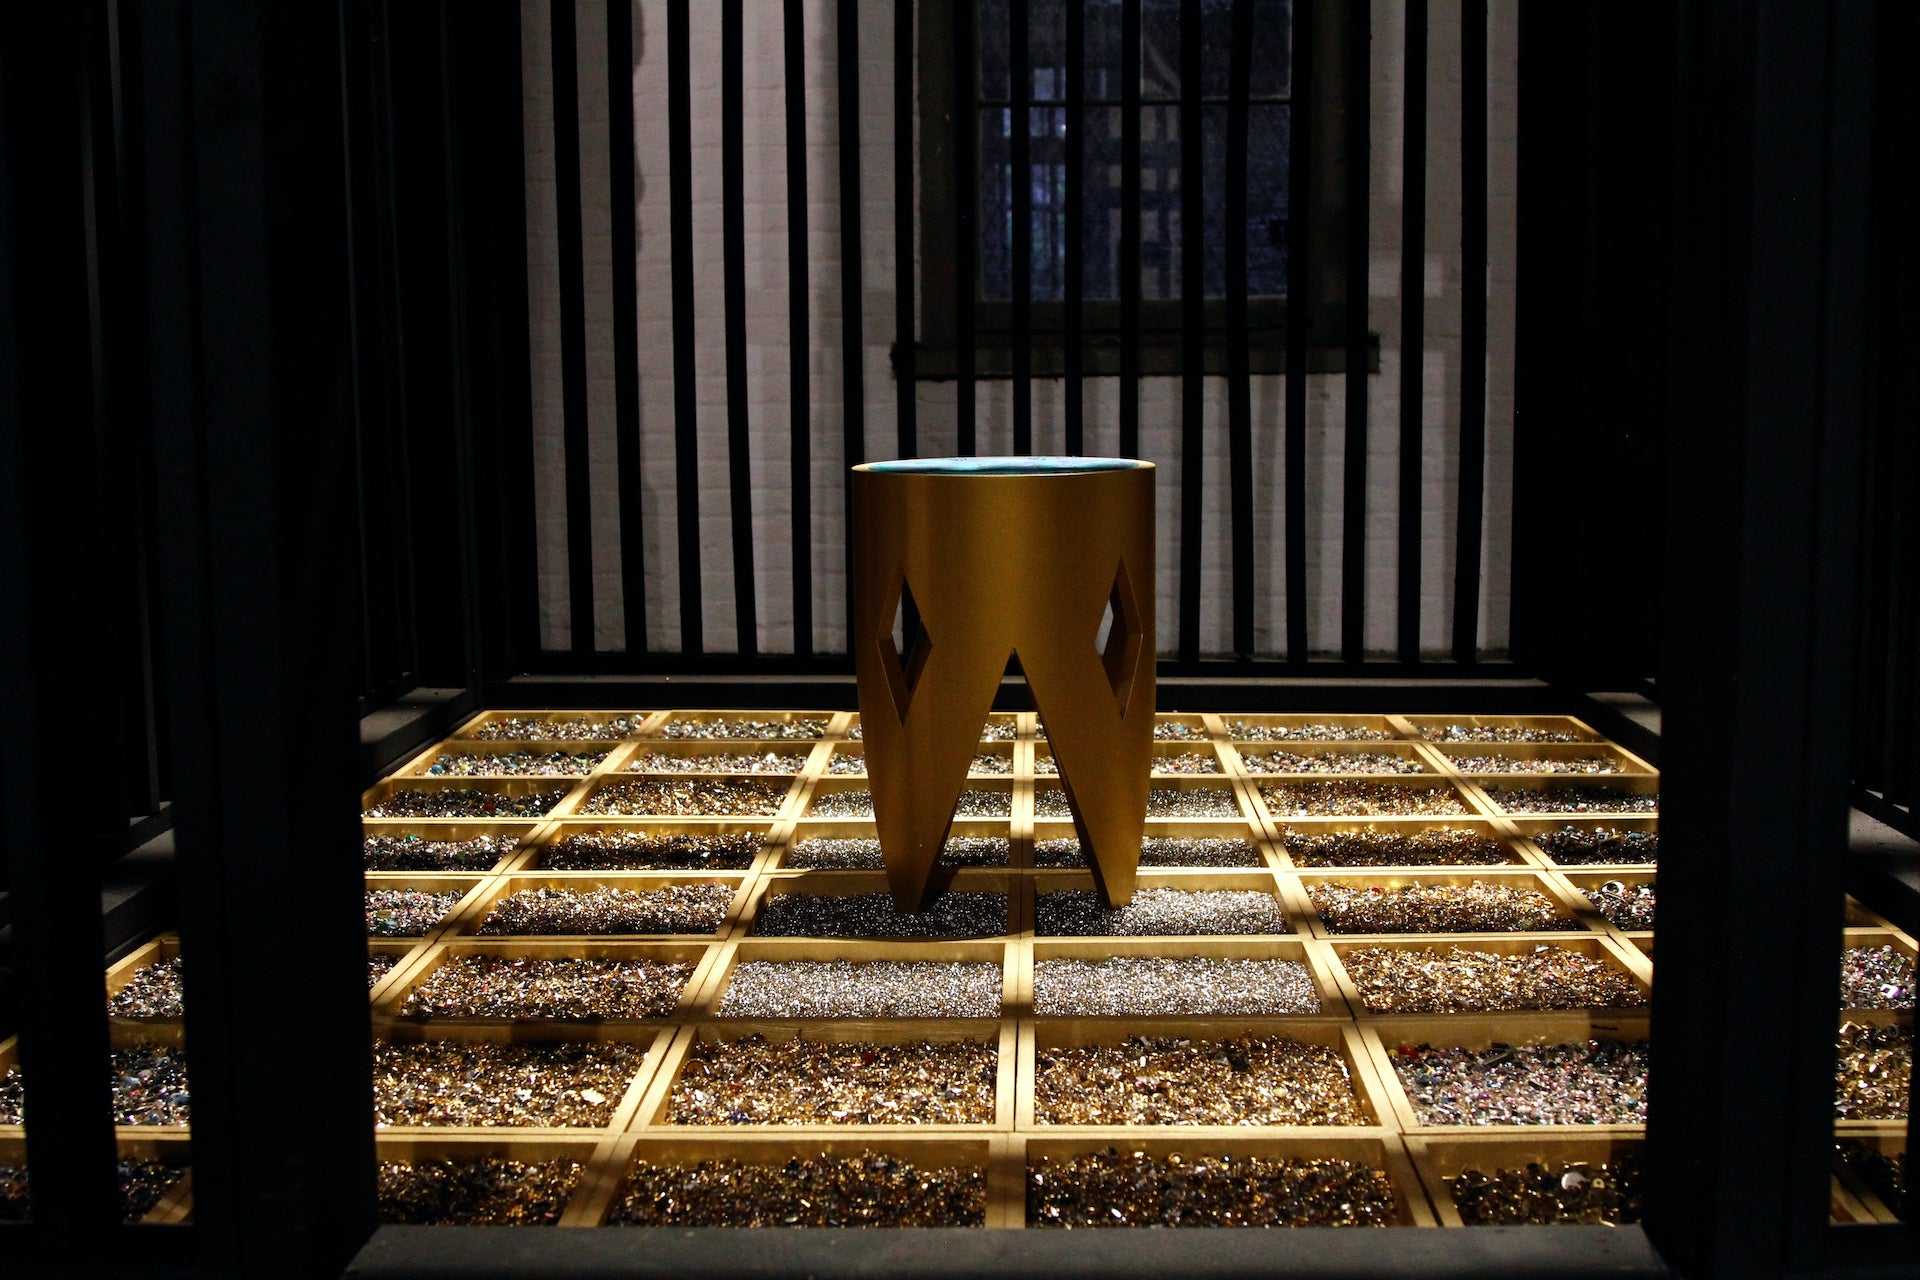 Isolation, a constructed jail cell, features a single stool to represent solitary confinement. The floor is composed of boxes and metal trinkets, signatures of the Ladds' practice. Image © Simon Courchel / The Invisible Dog